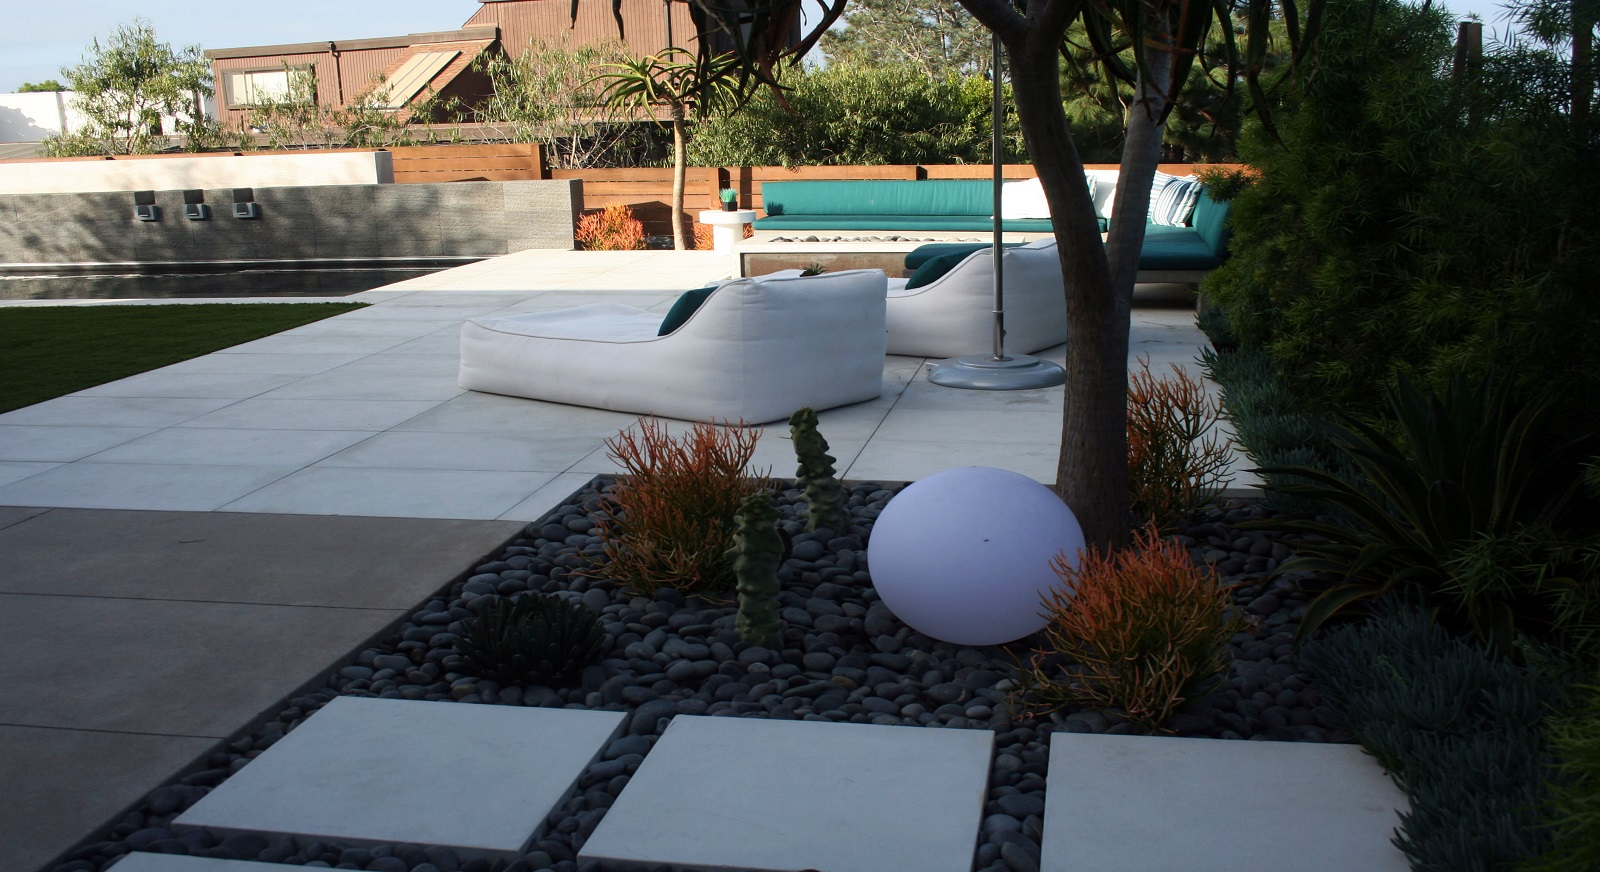 cross construction remodel landscape pool concrete pavers